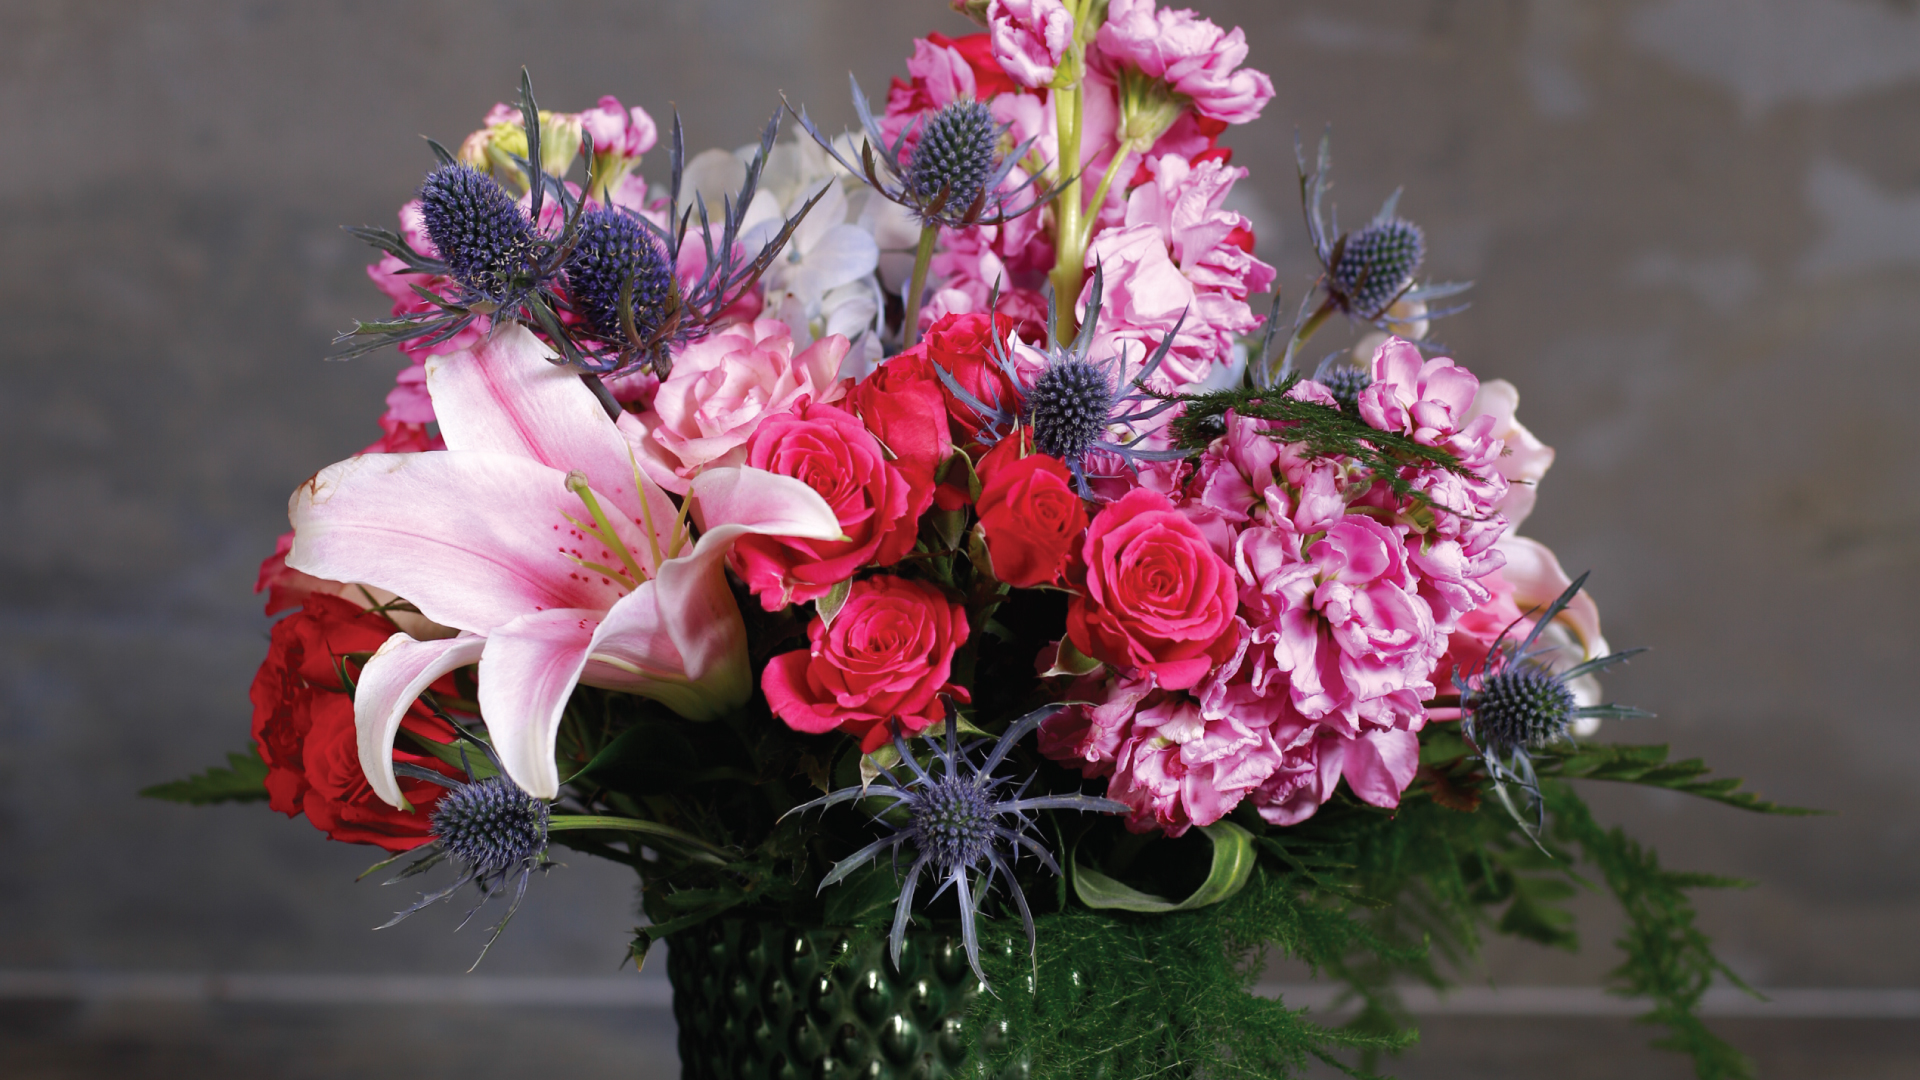 Roiann Ridley | flowers for weddings, special events, personal, sympathy